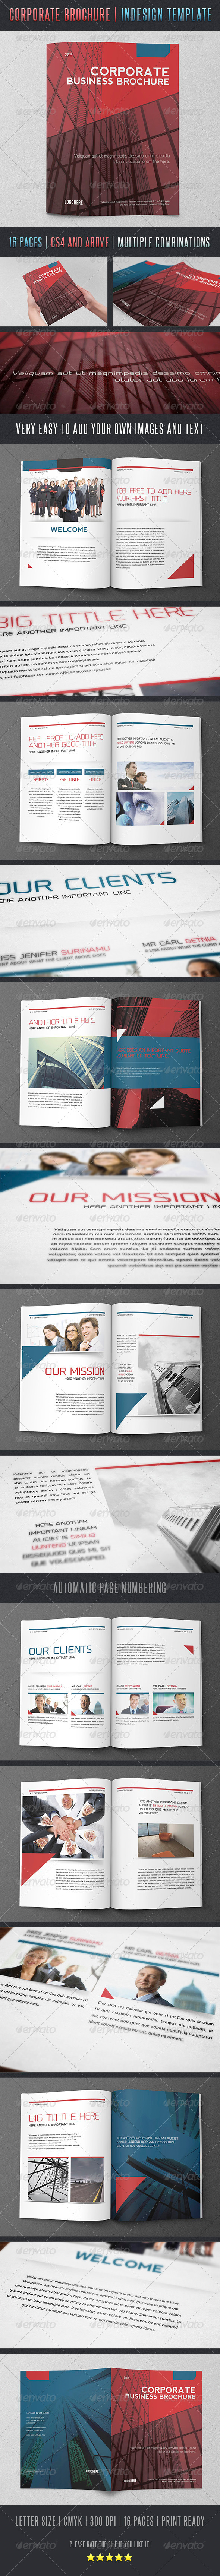 Corporate Brochure - Corporate Brochures